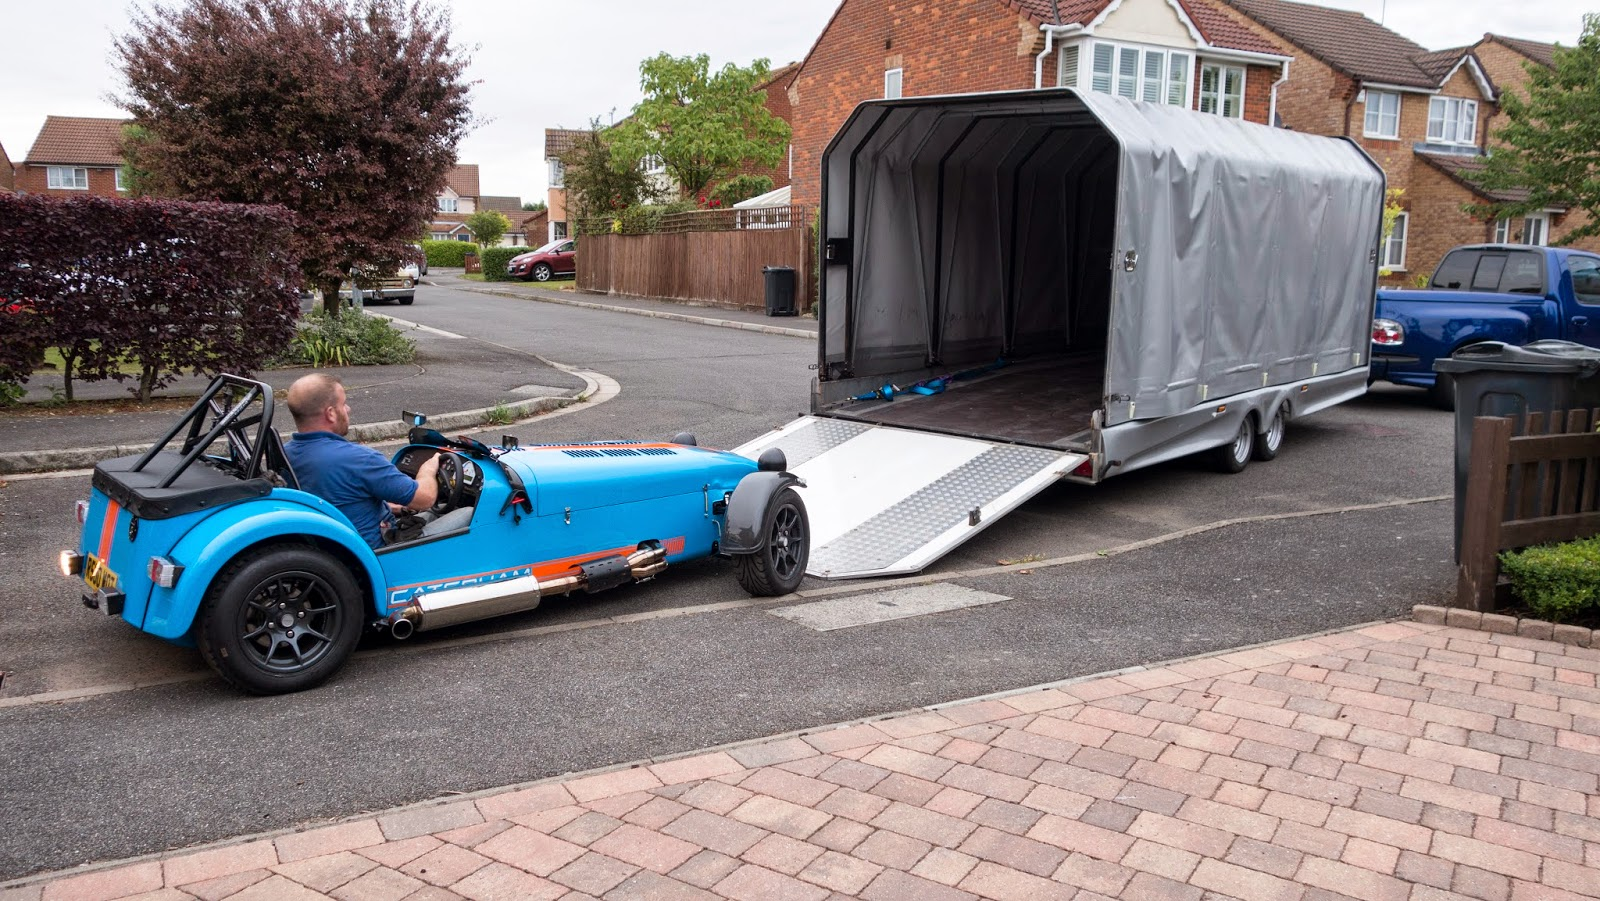 My Caterham R500 being unloaded after it's first service.